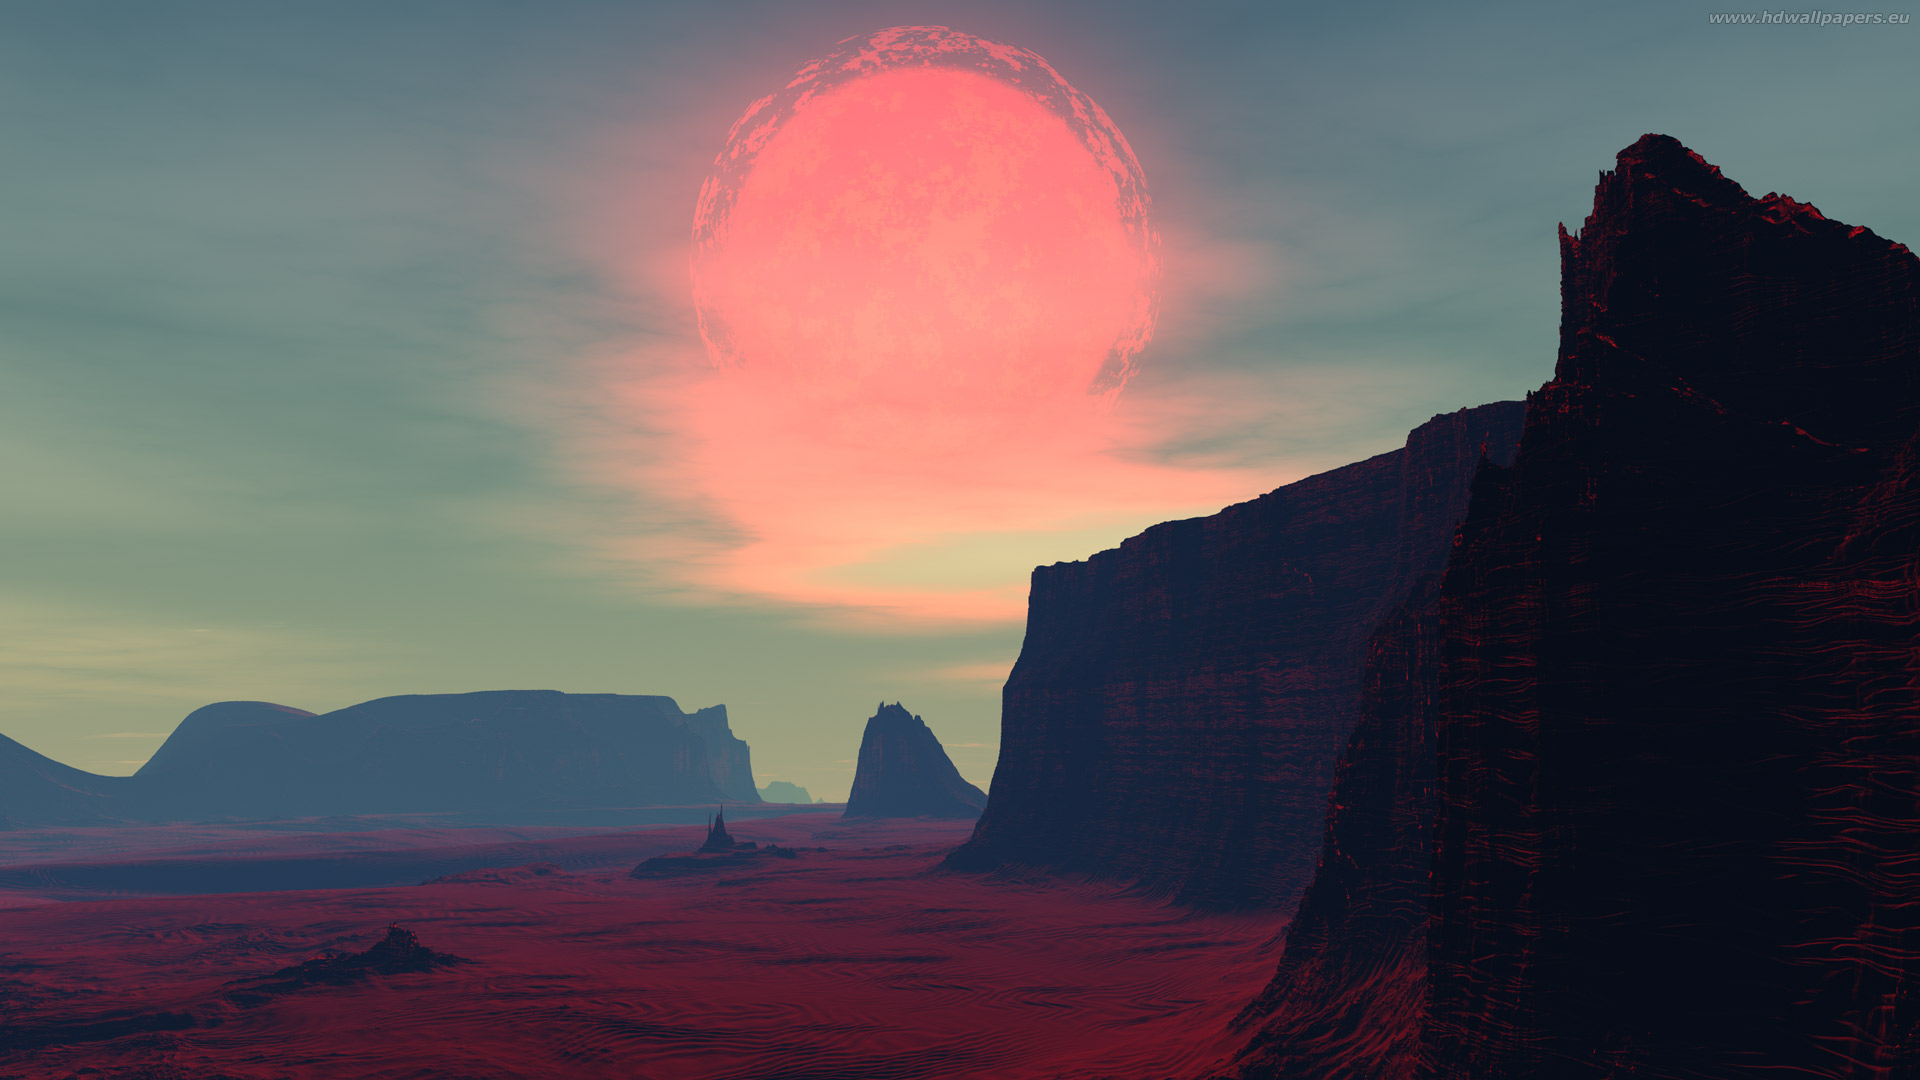 red-sun-planet-maximumshadow 1360x768